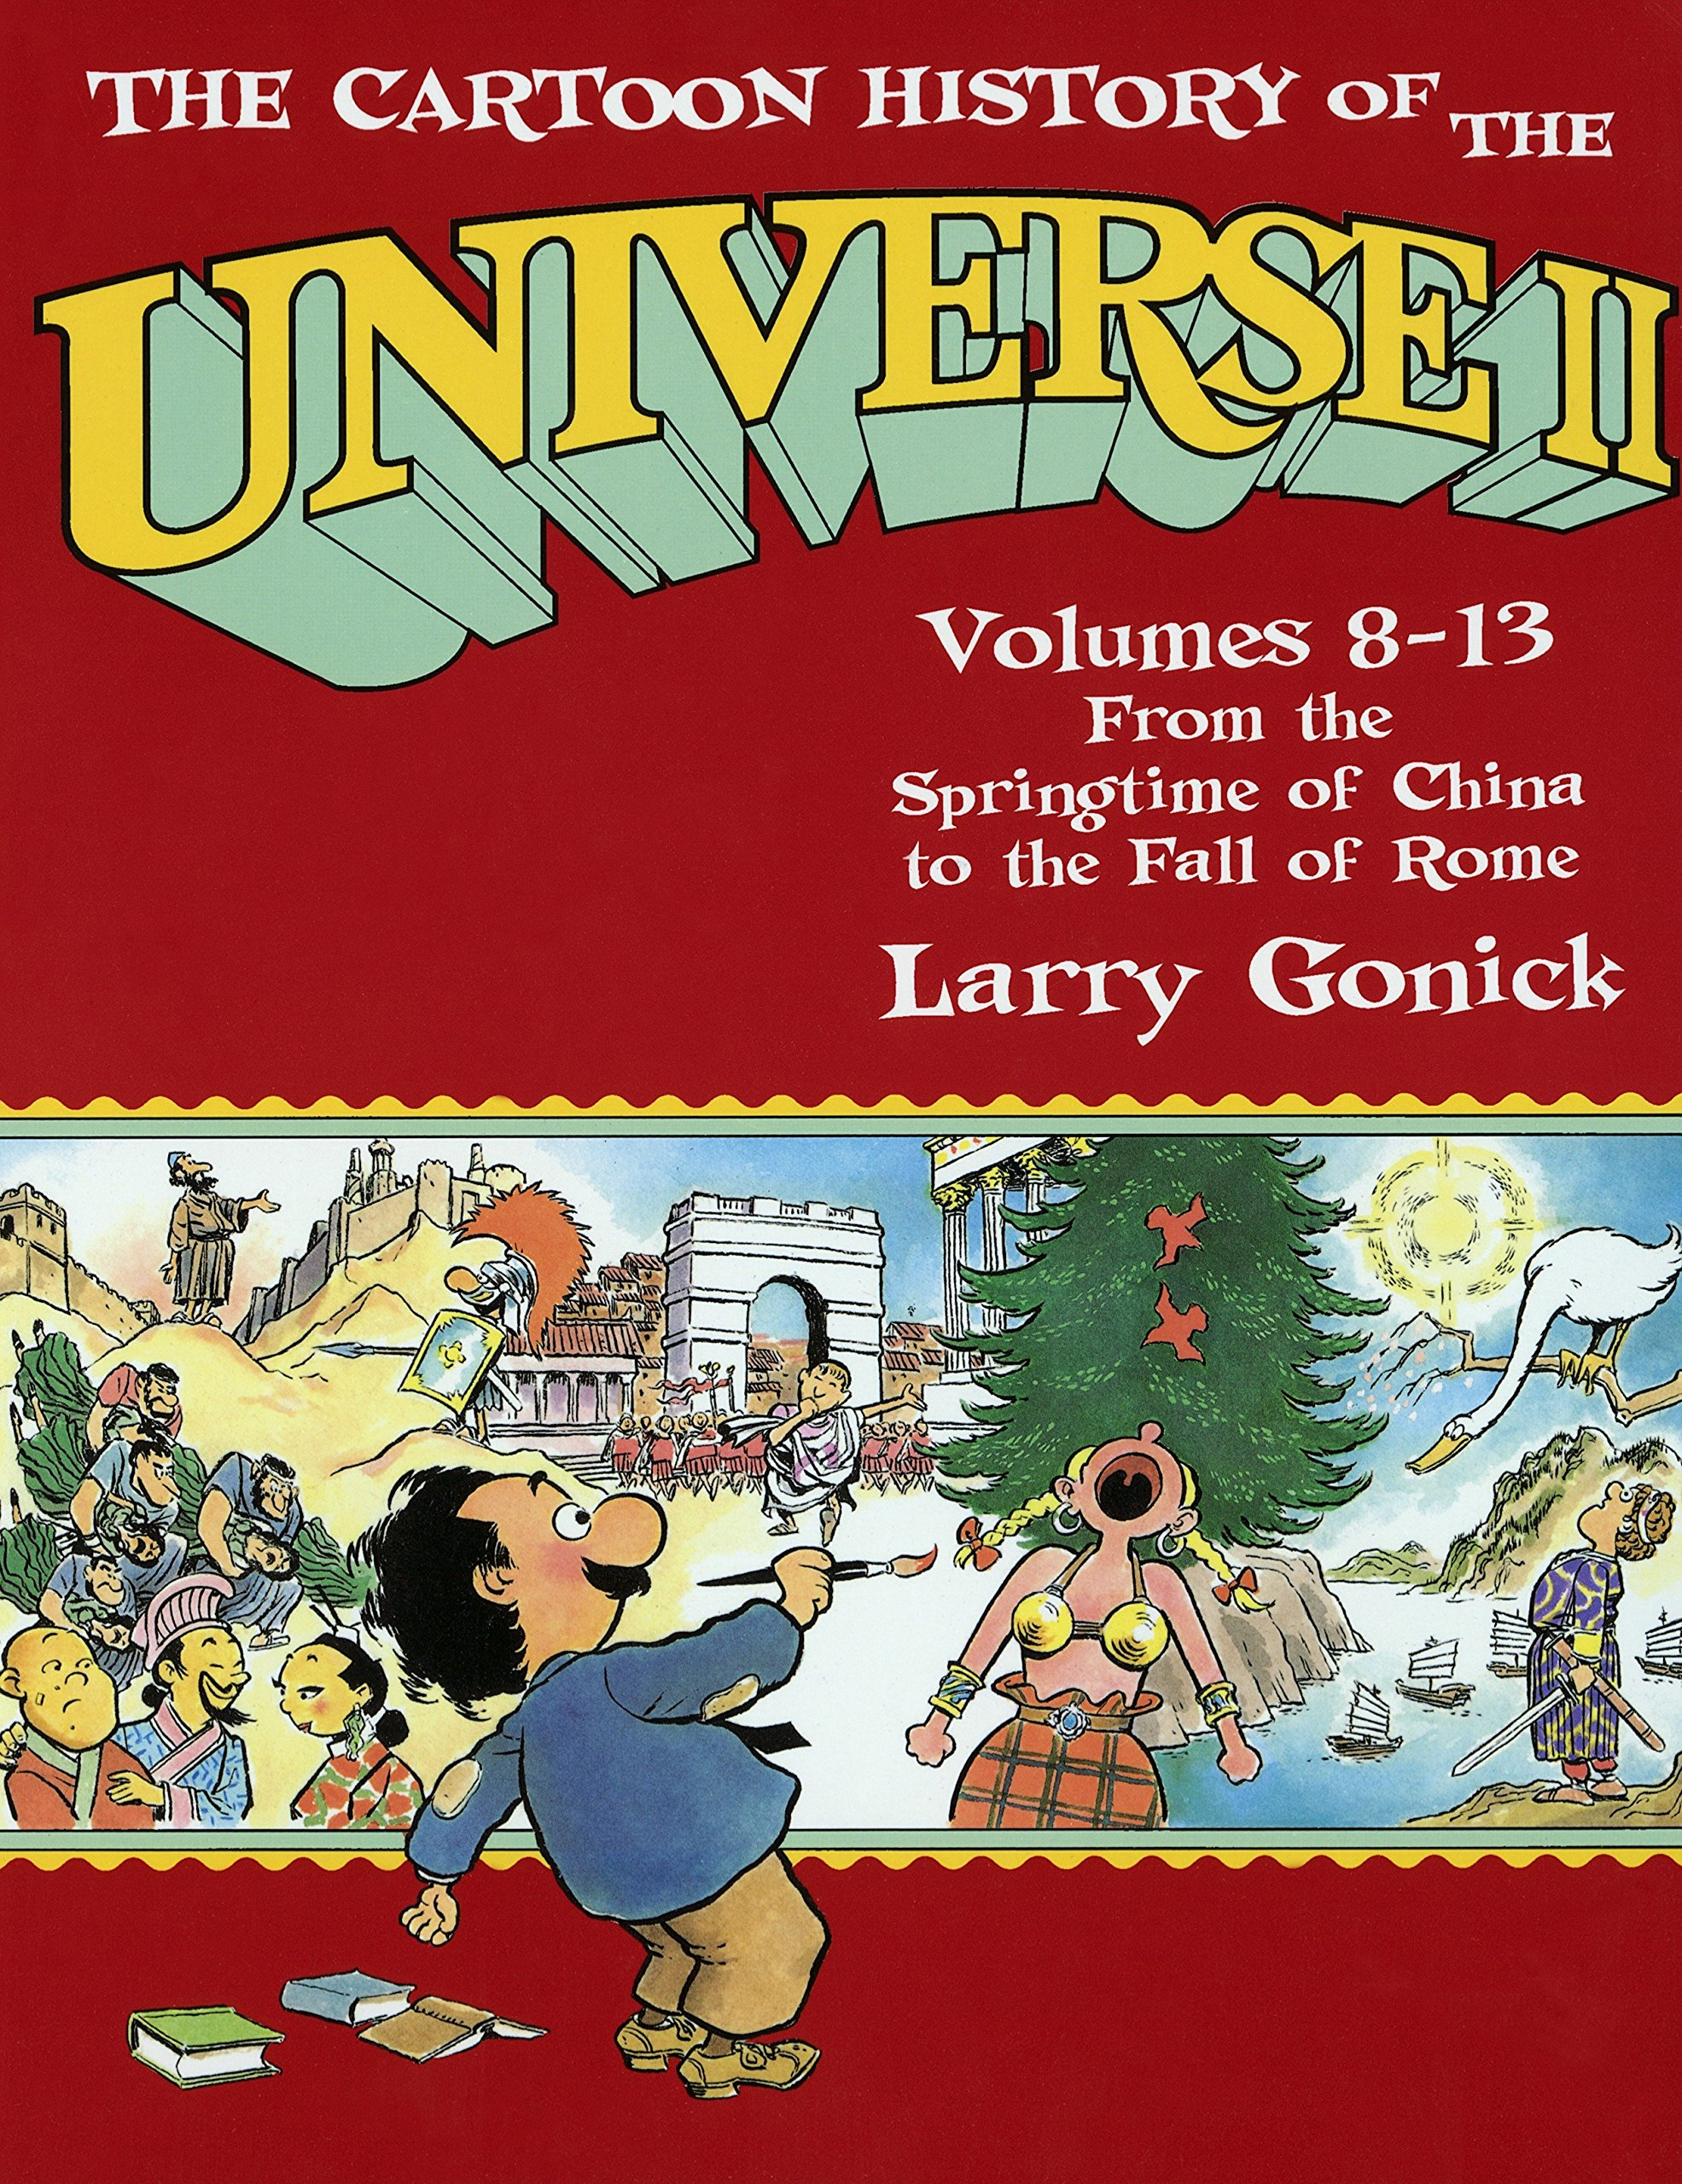 The Cartoon History of the Universe II, Volumes 8-13: From the Springtime of China to the Fall of Rome (Pt.2) by Main Street Books/Doubleday